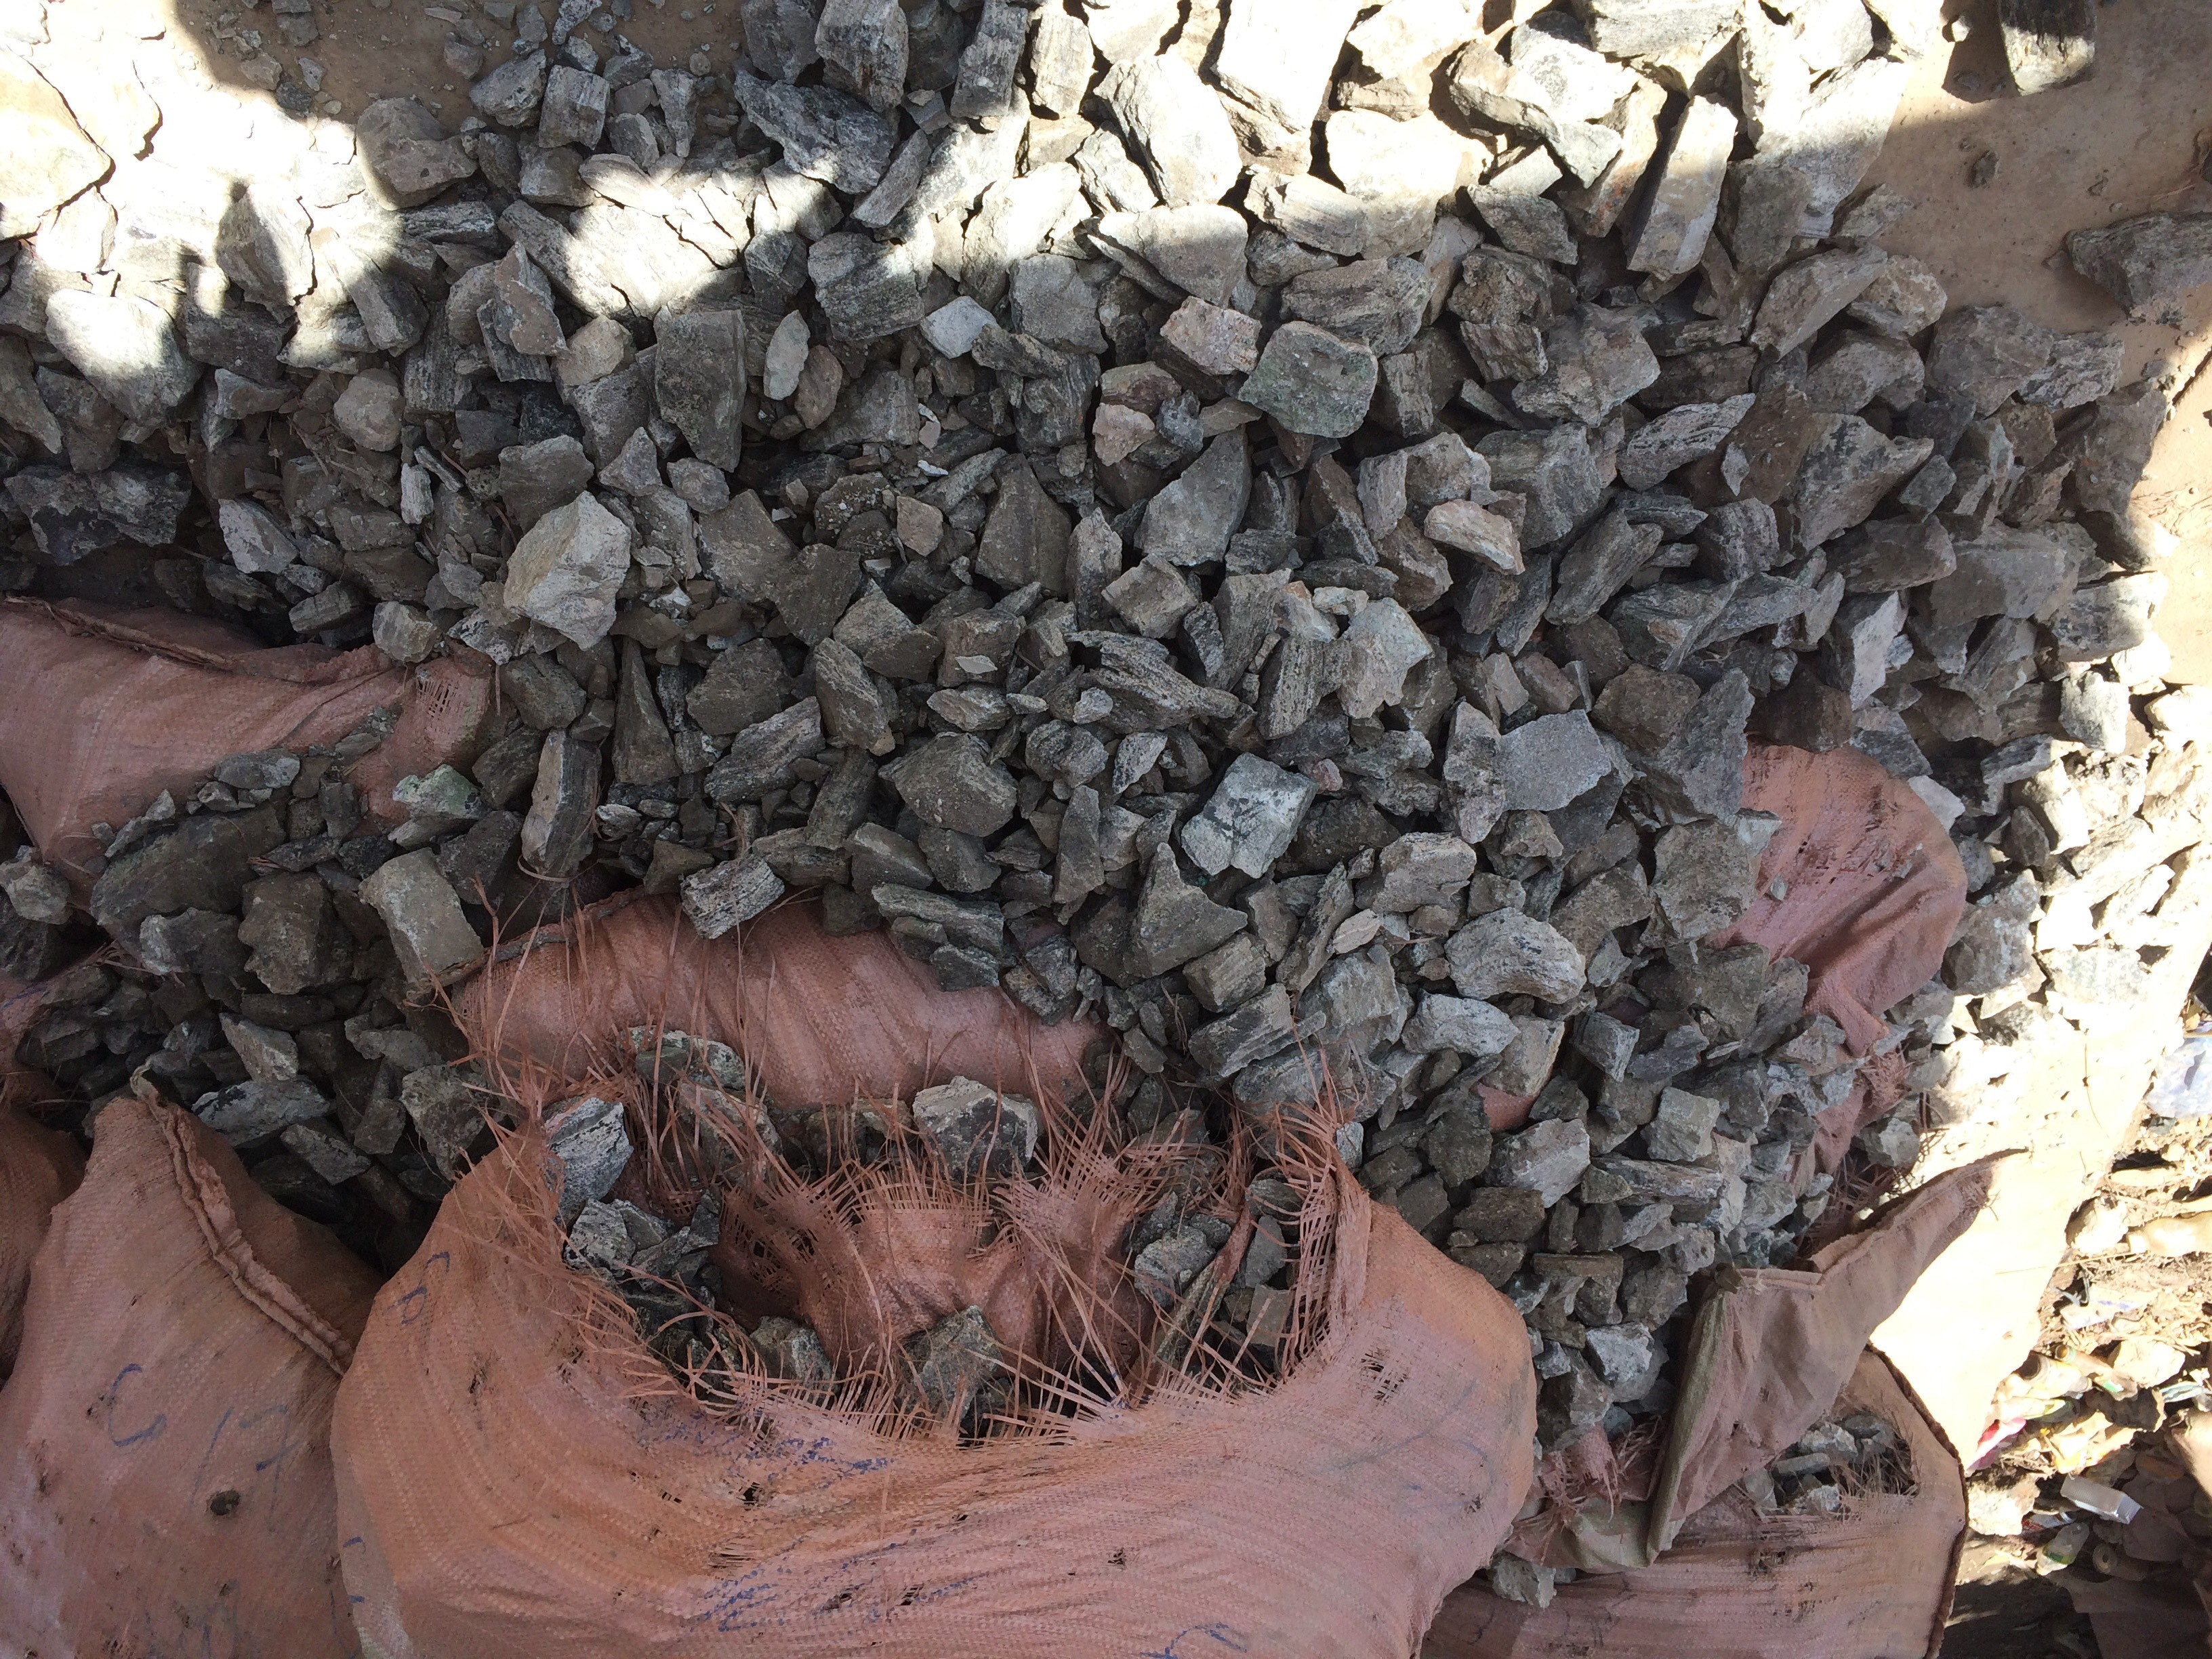 Sacks of copper and cobalt ore. © Andrew Cooke, Levin Sources, 2018